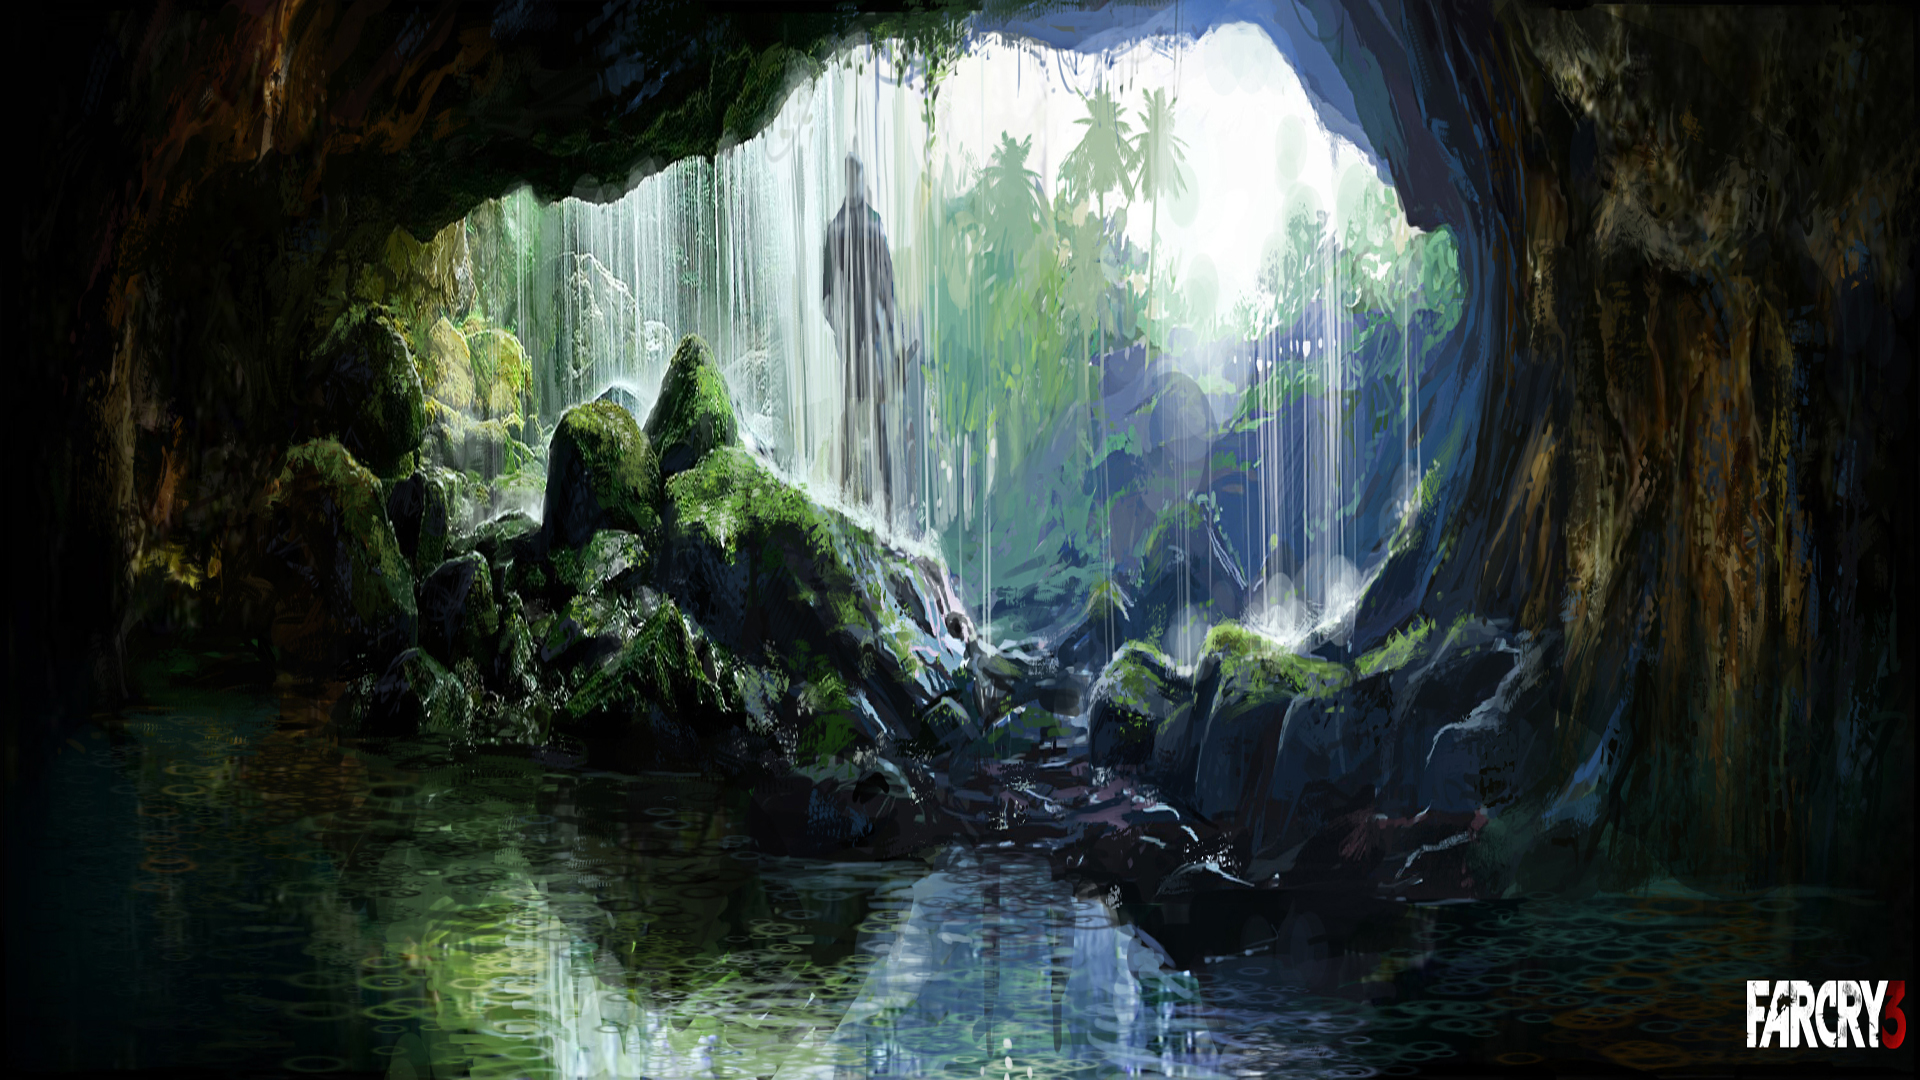 Wallpaper Hunter X Hunter Iphone Far Cry 3 Full Hd Wallpaper And Background Image